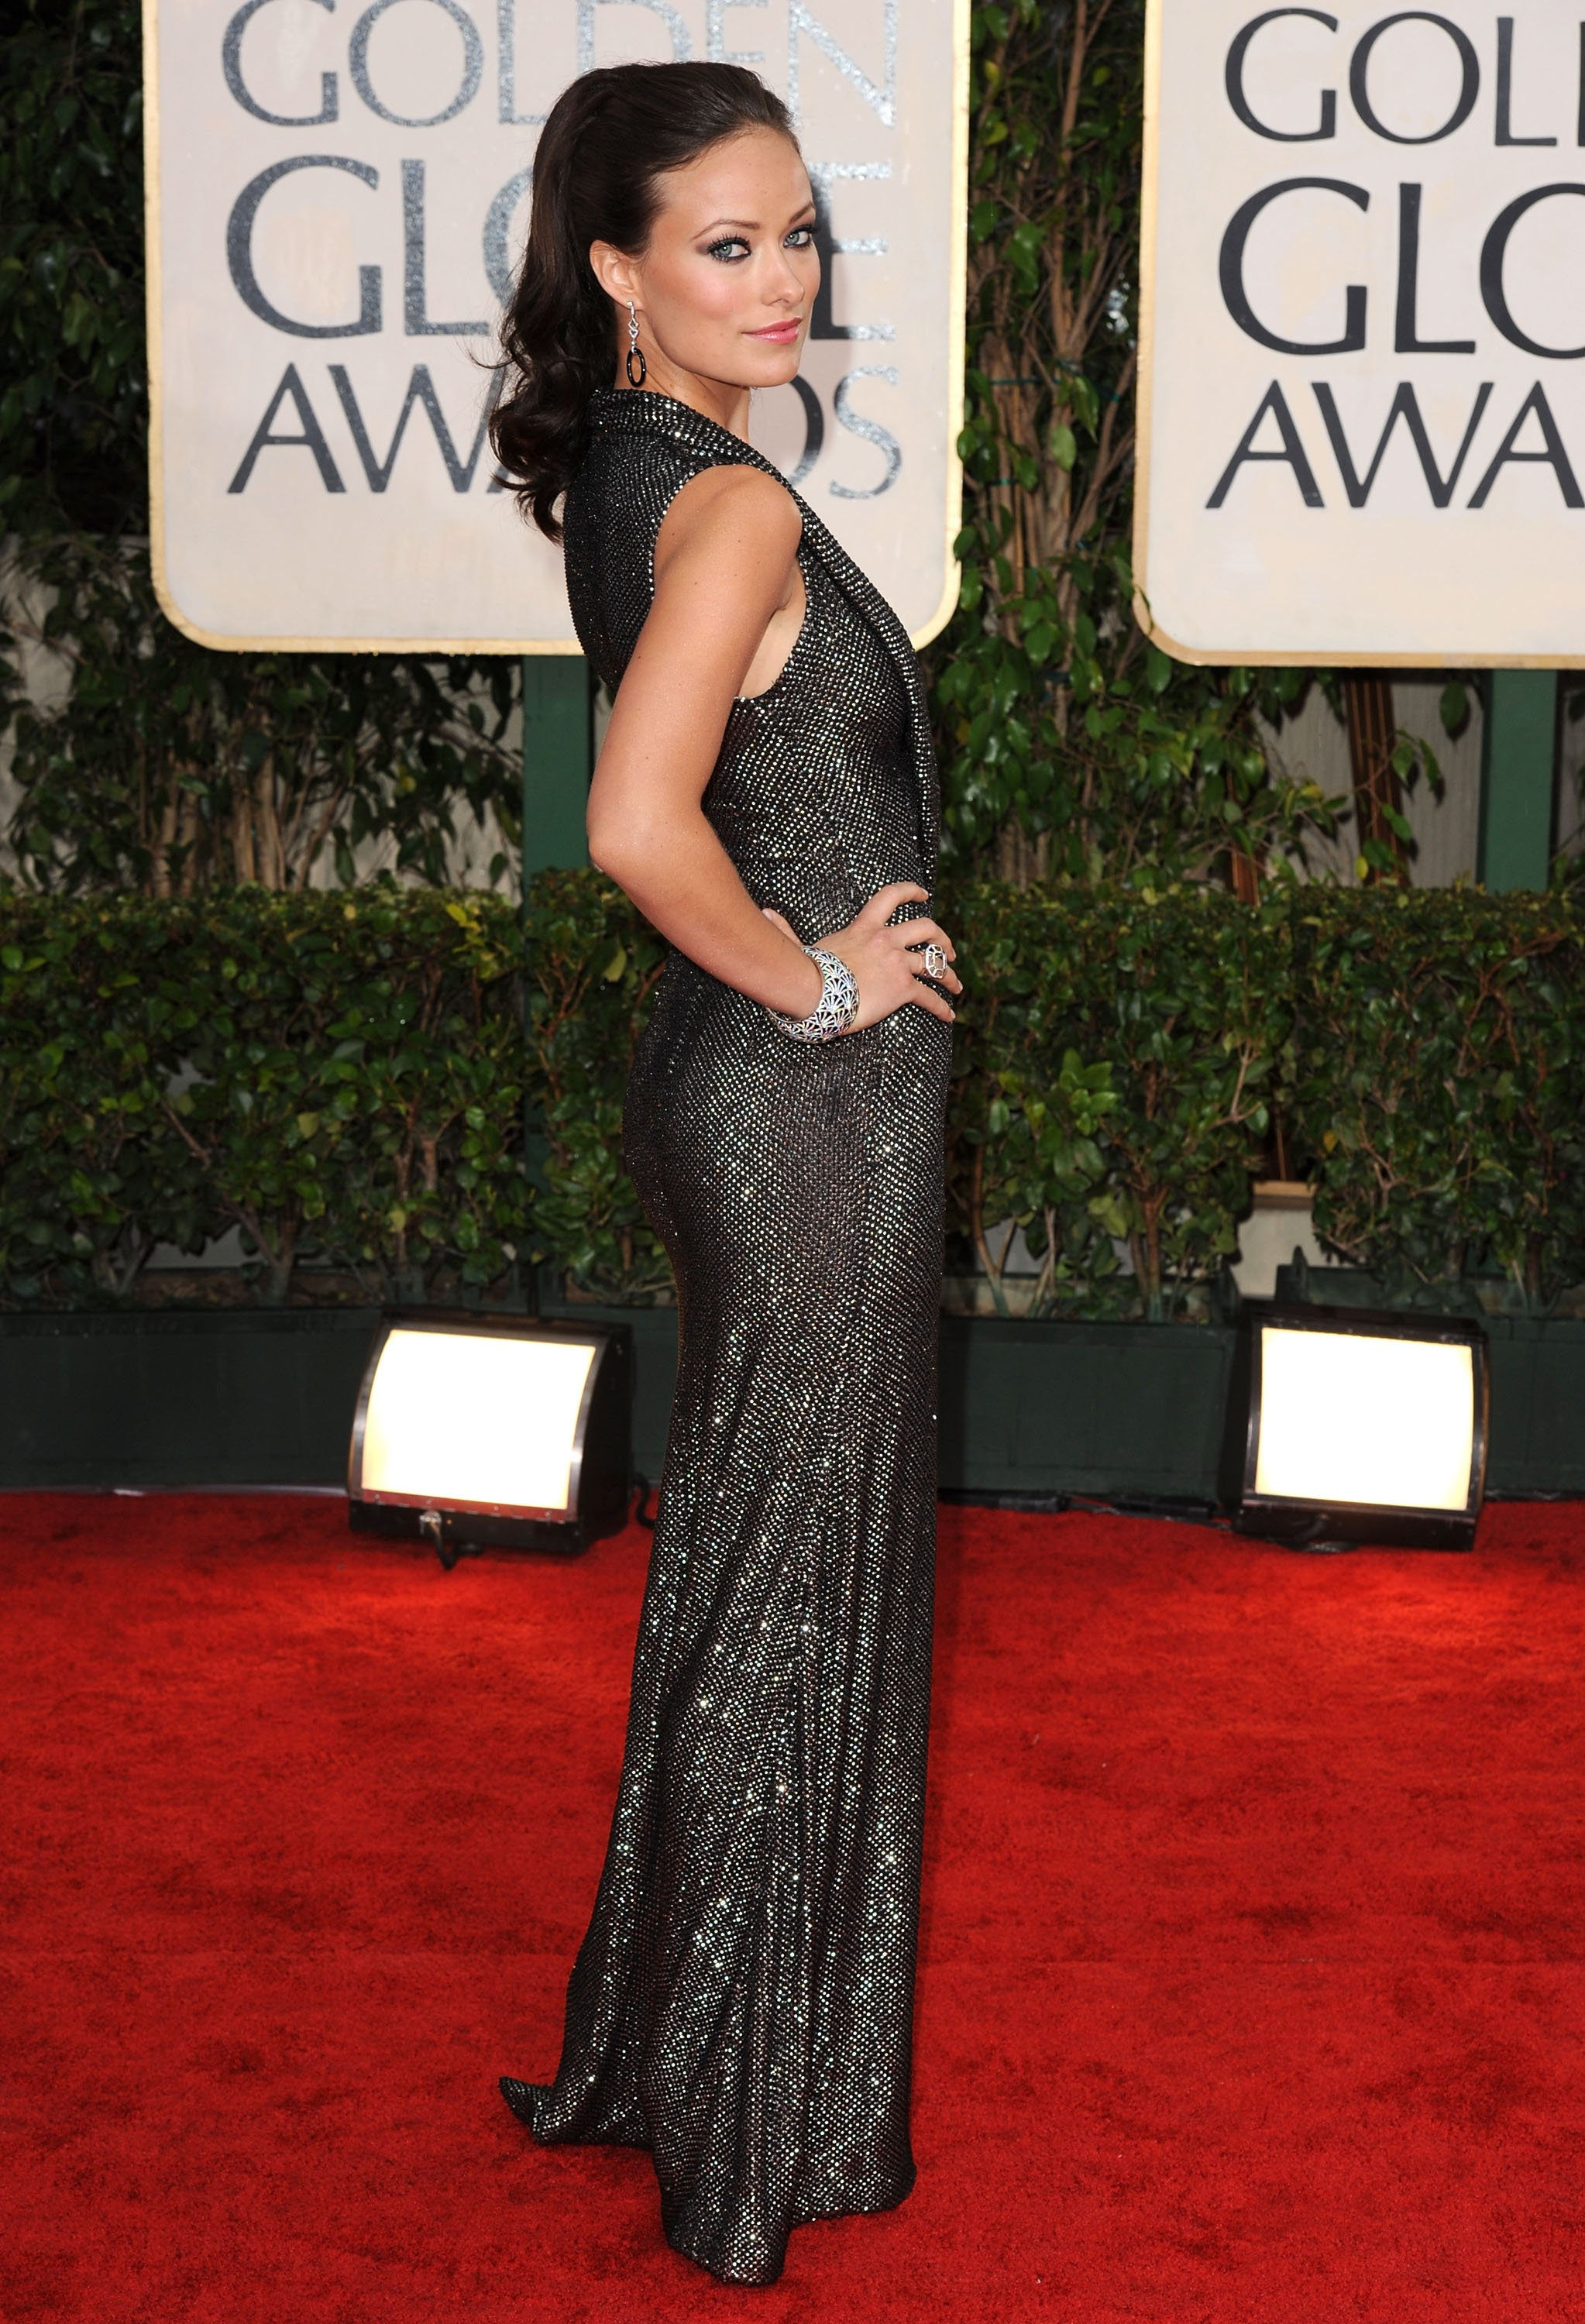 78043_Olivia_Wilde_arrives_at_the_67th_Annual_Golden_Globe_Awards-1_122_35lo.jpg